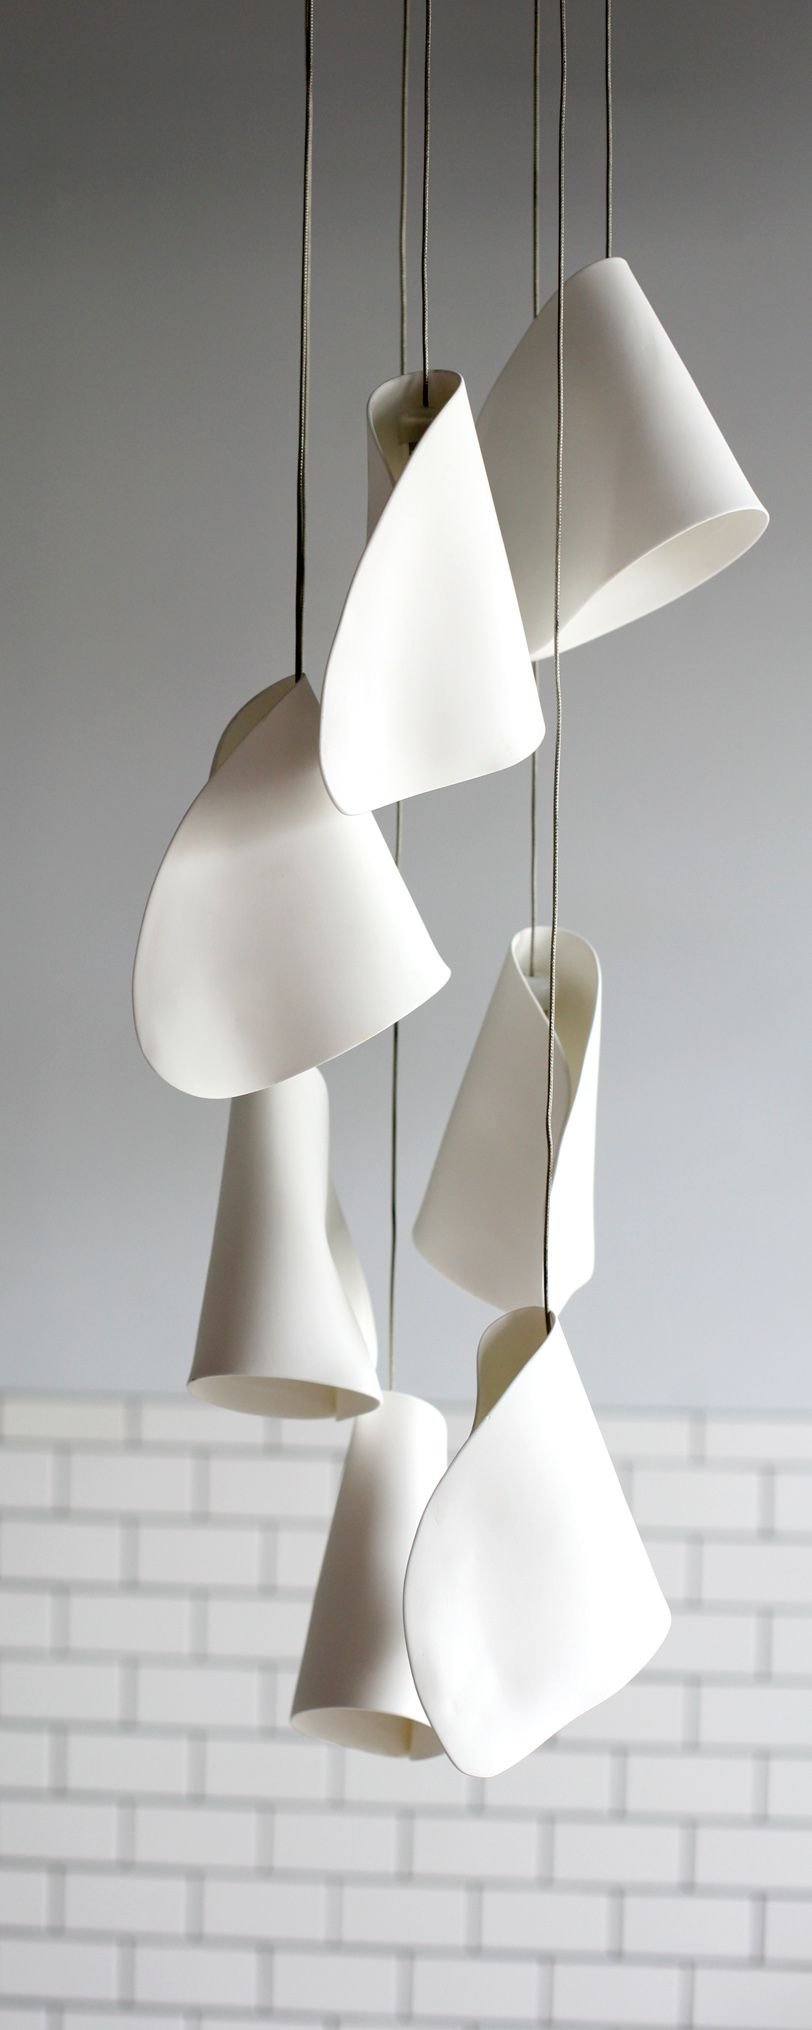 Porcelain Lights Ceramics Lighting Cool Lamp